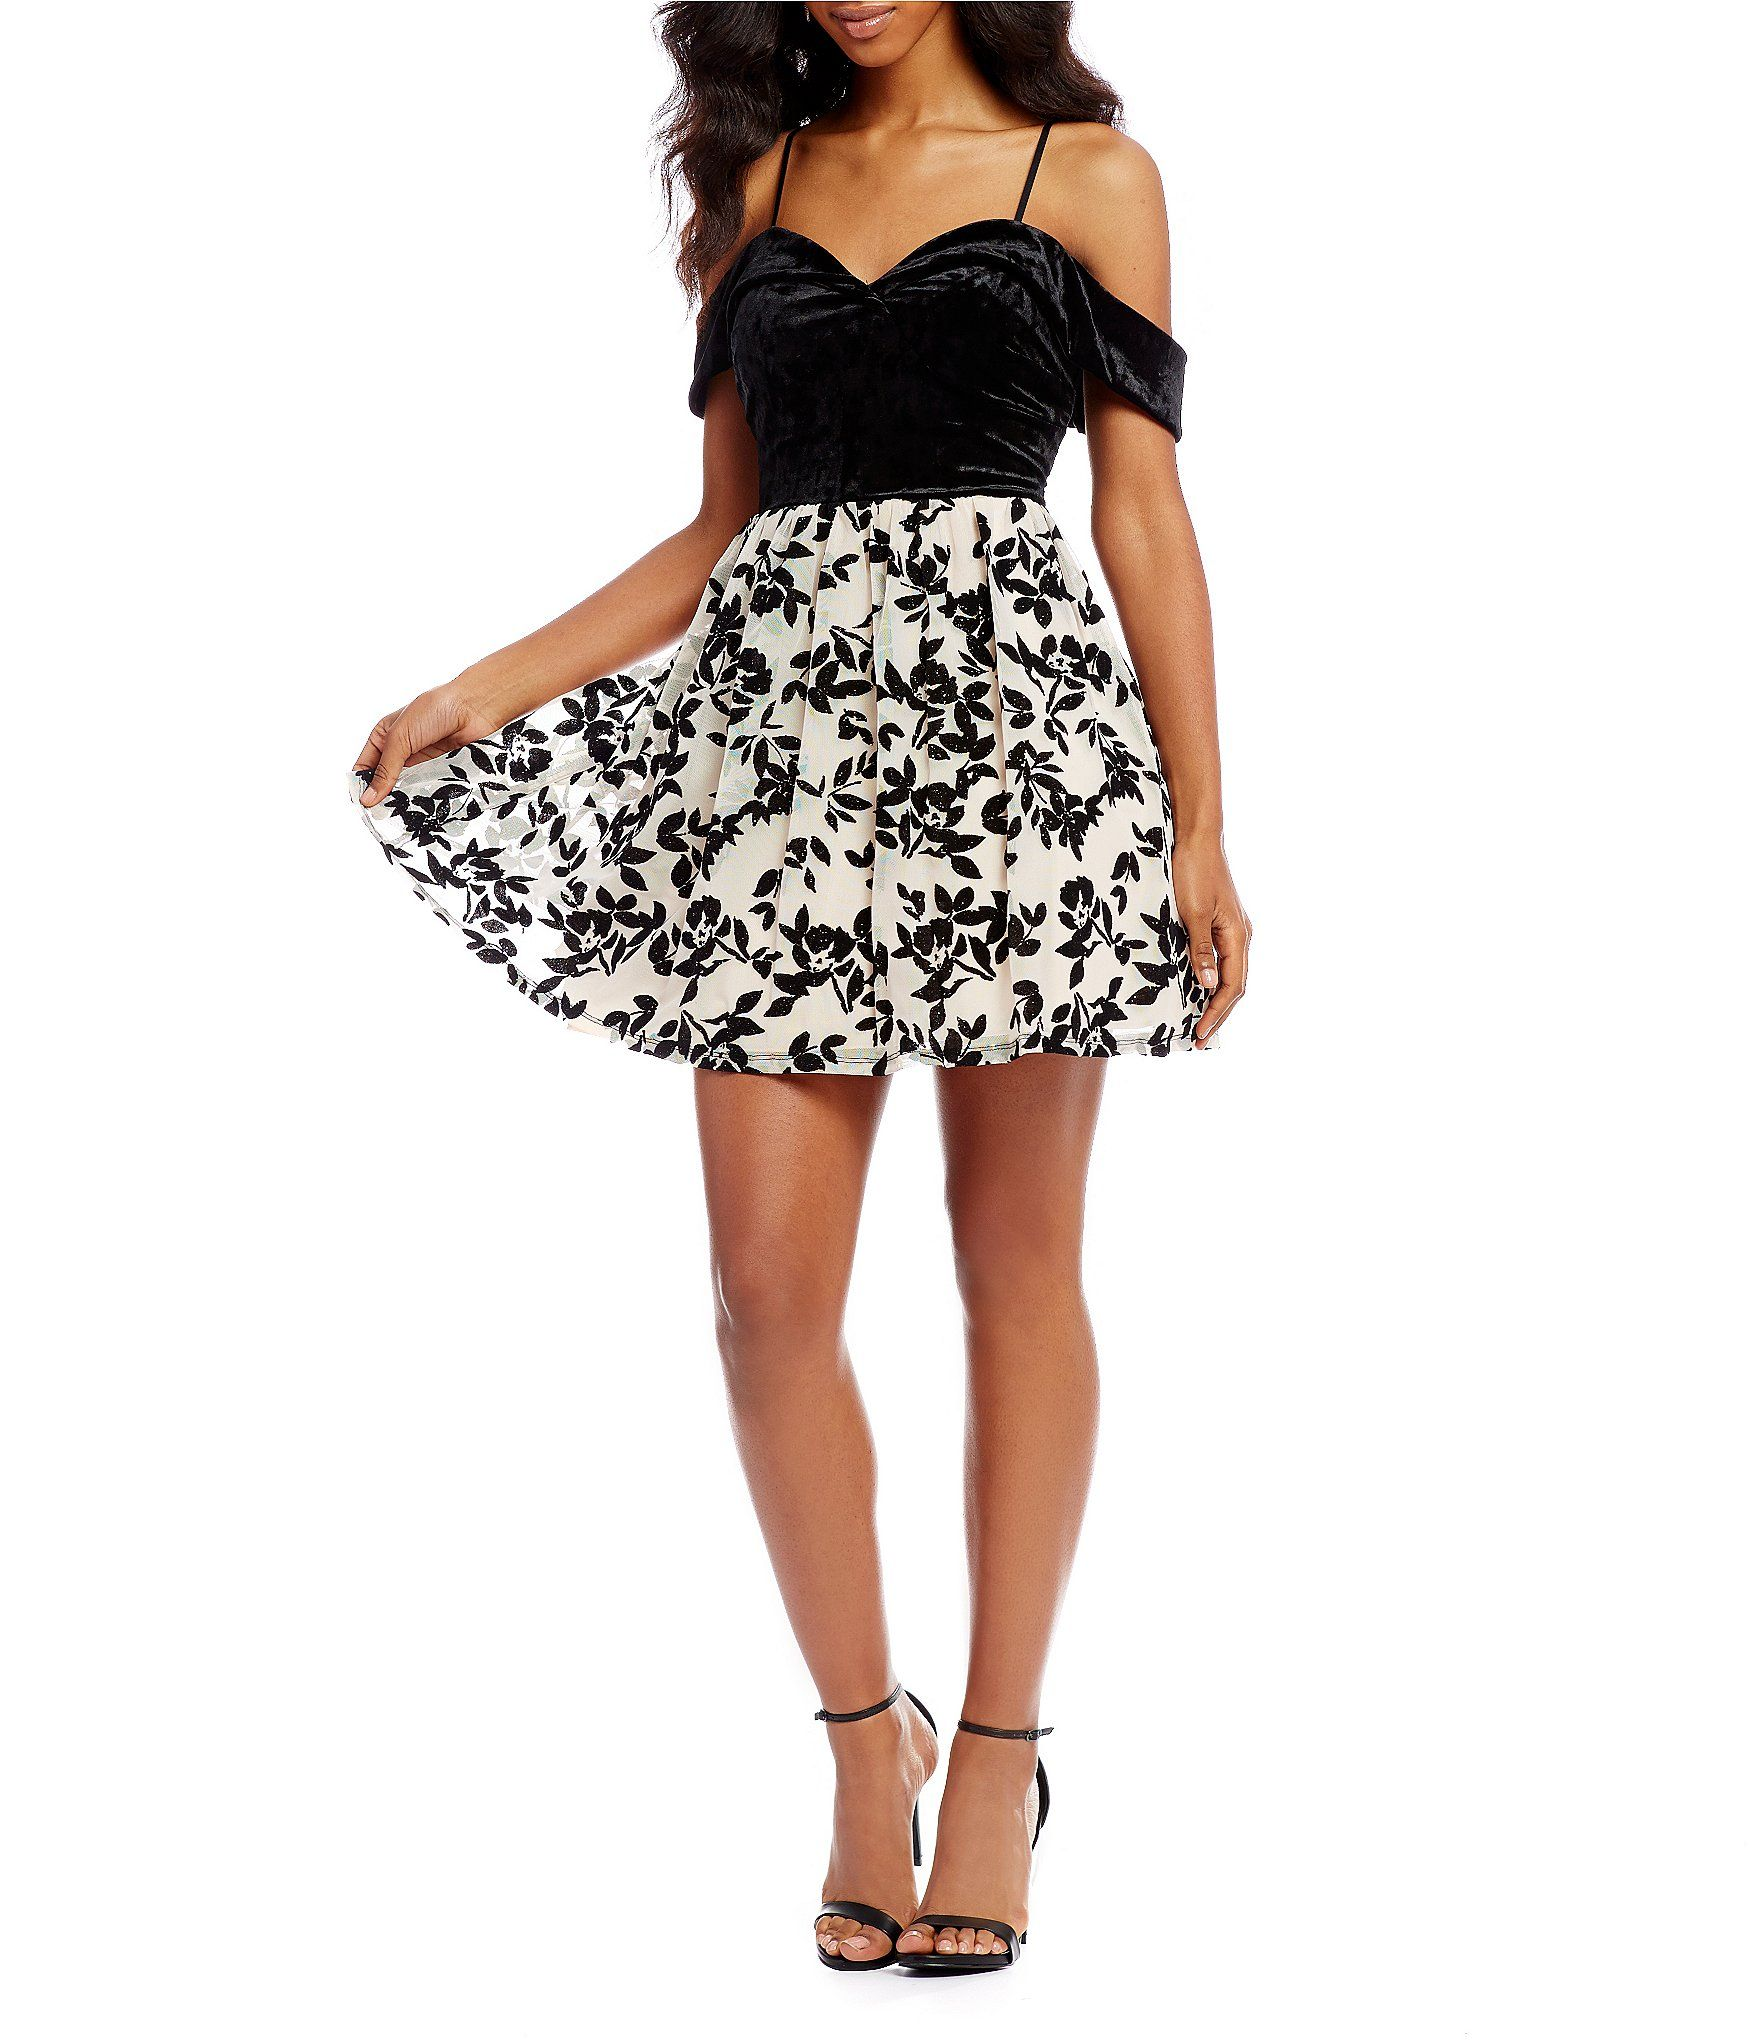 e1247855685 Shop for Jodi Kristopher Off-The-Shoulder Flocked Fit and Flare Dress at  Dillards.com. Visit Dillards.com to find clothing